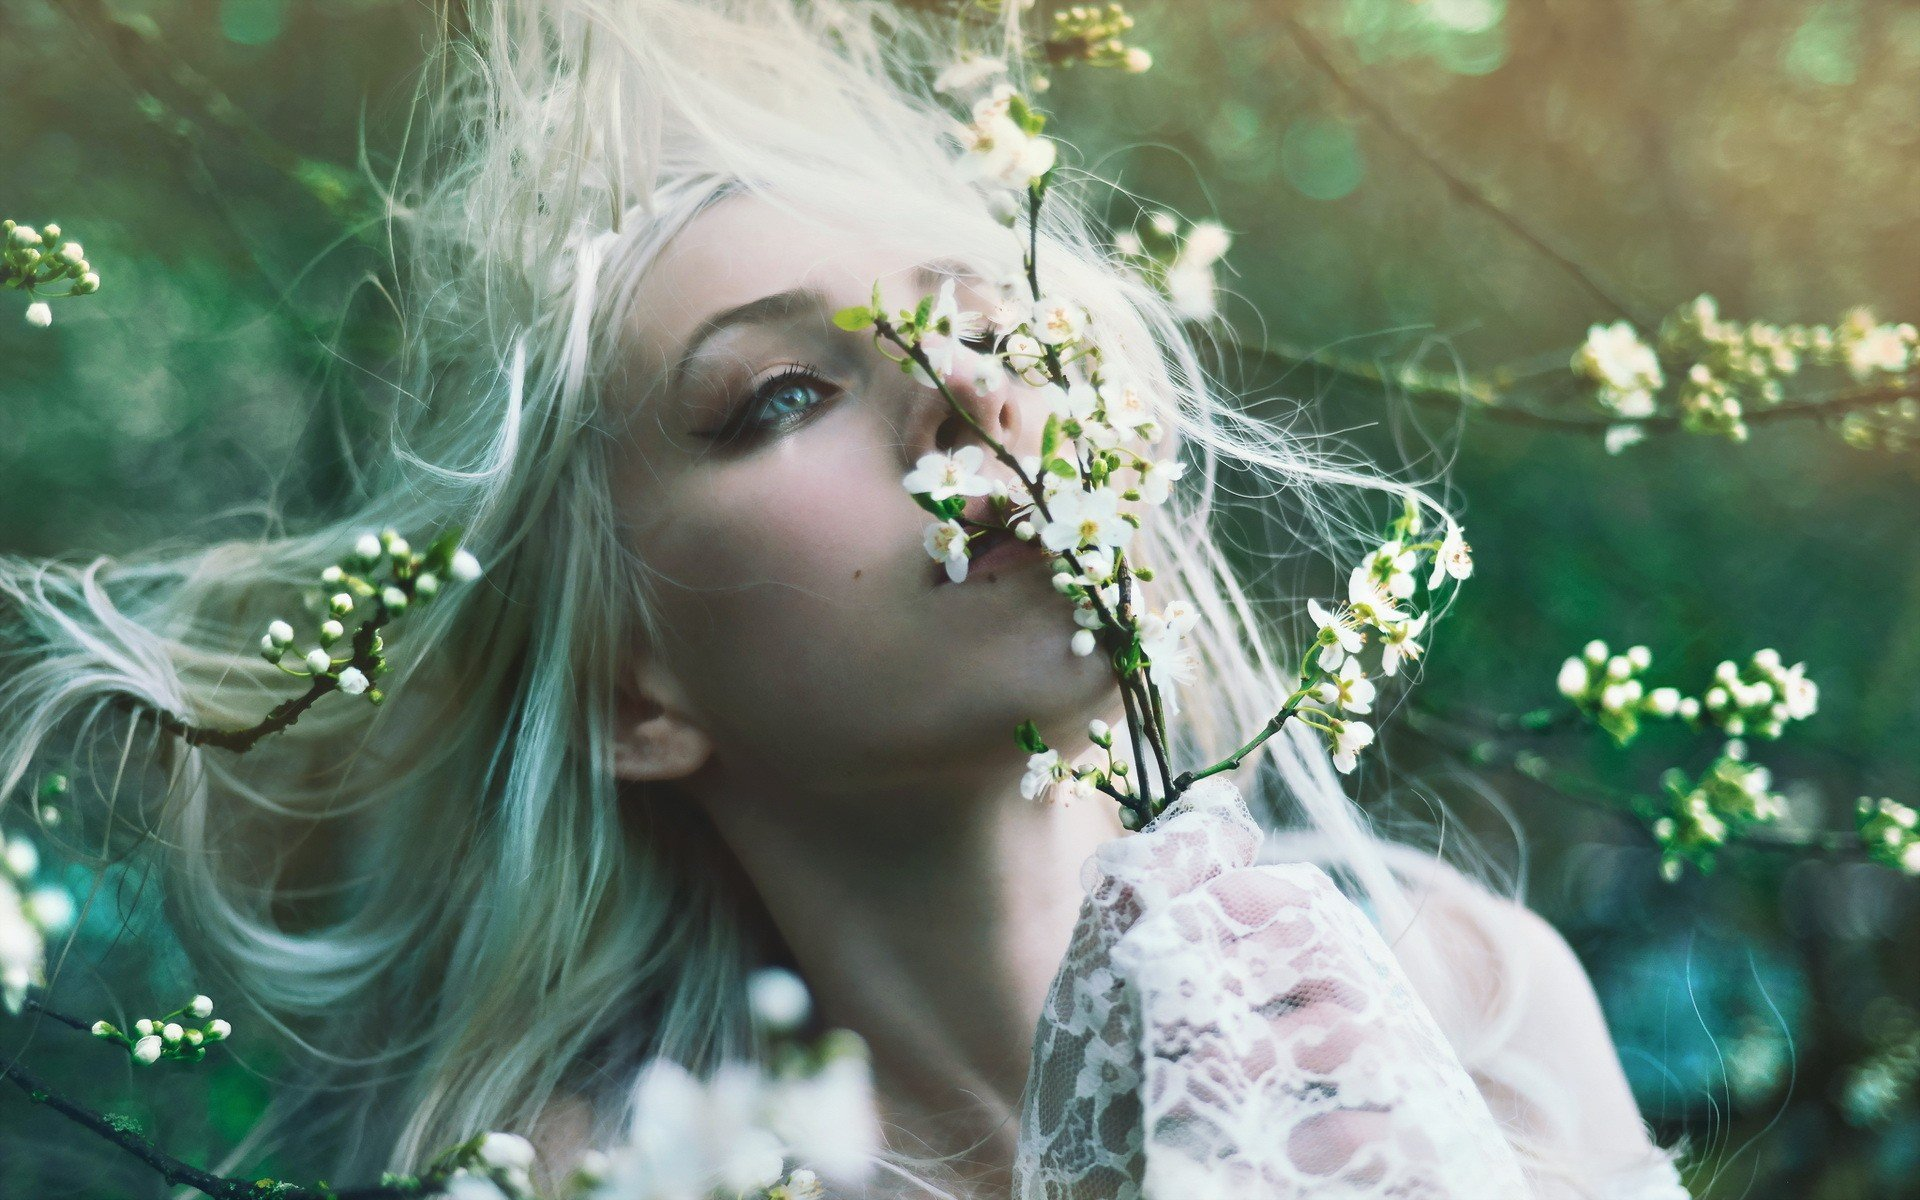 women nature flowers blue eyes macro white hair branches